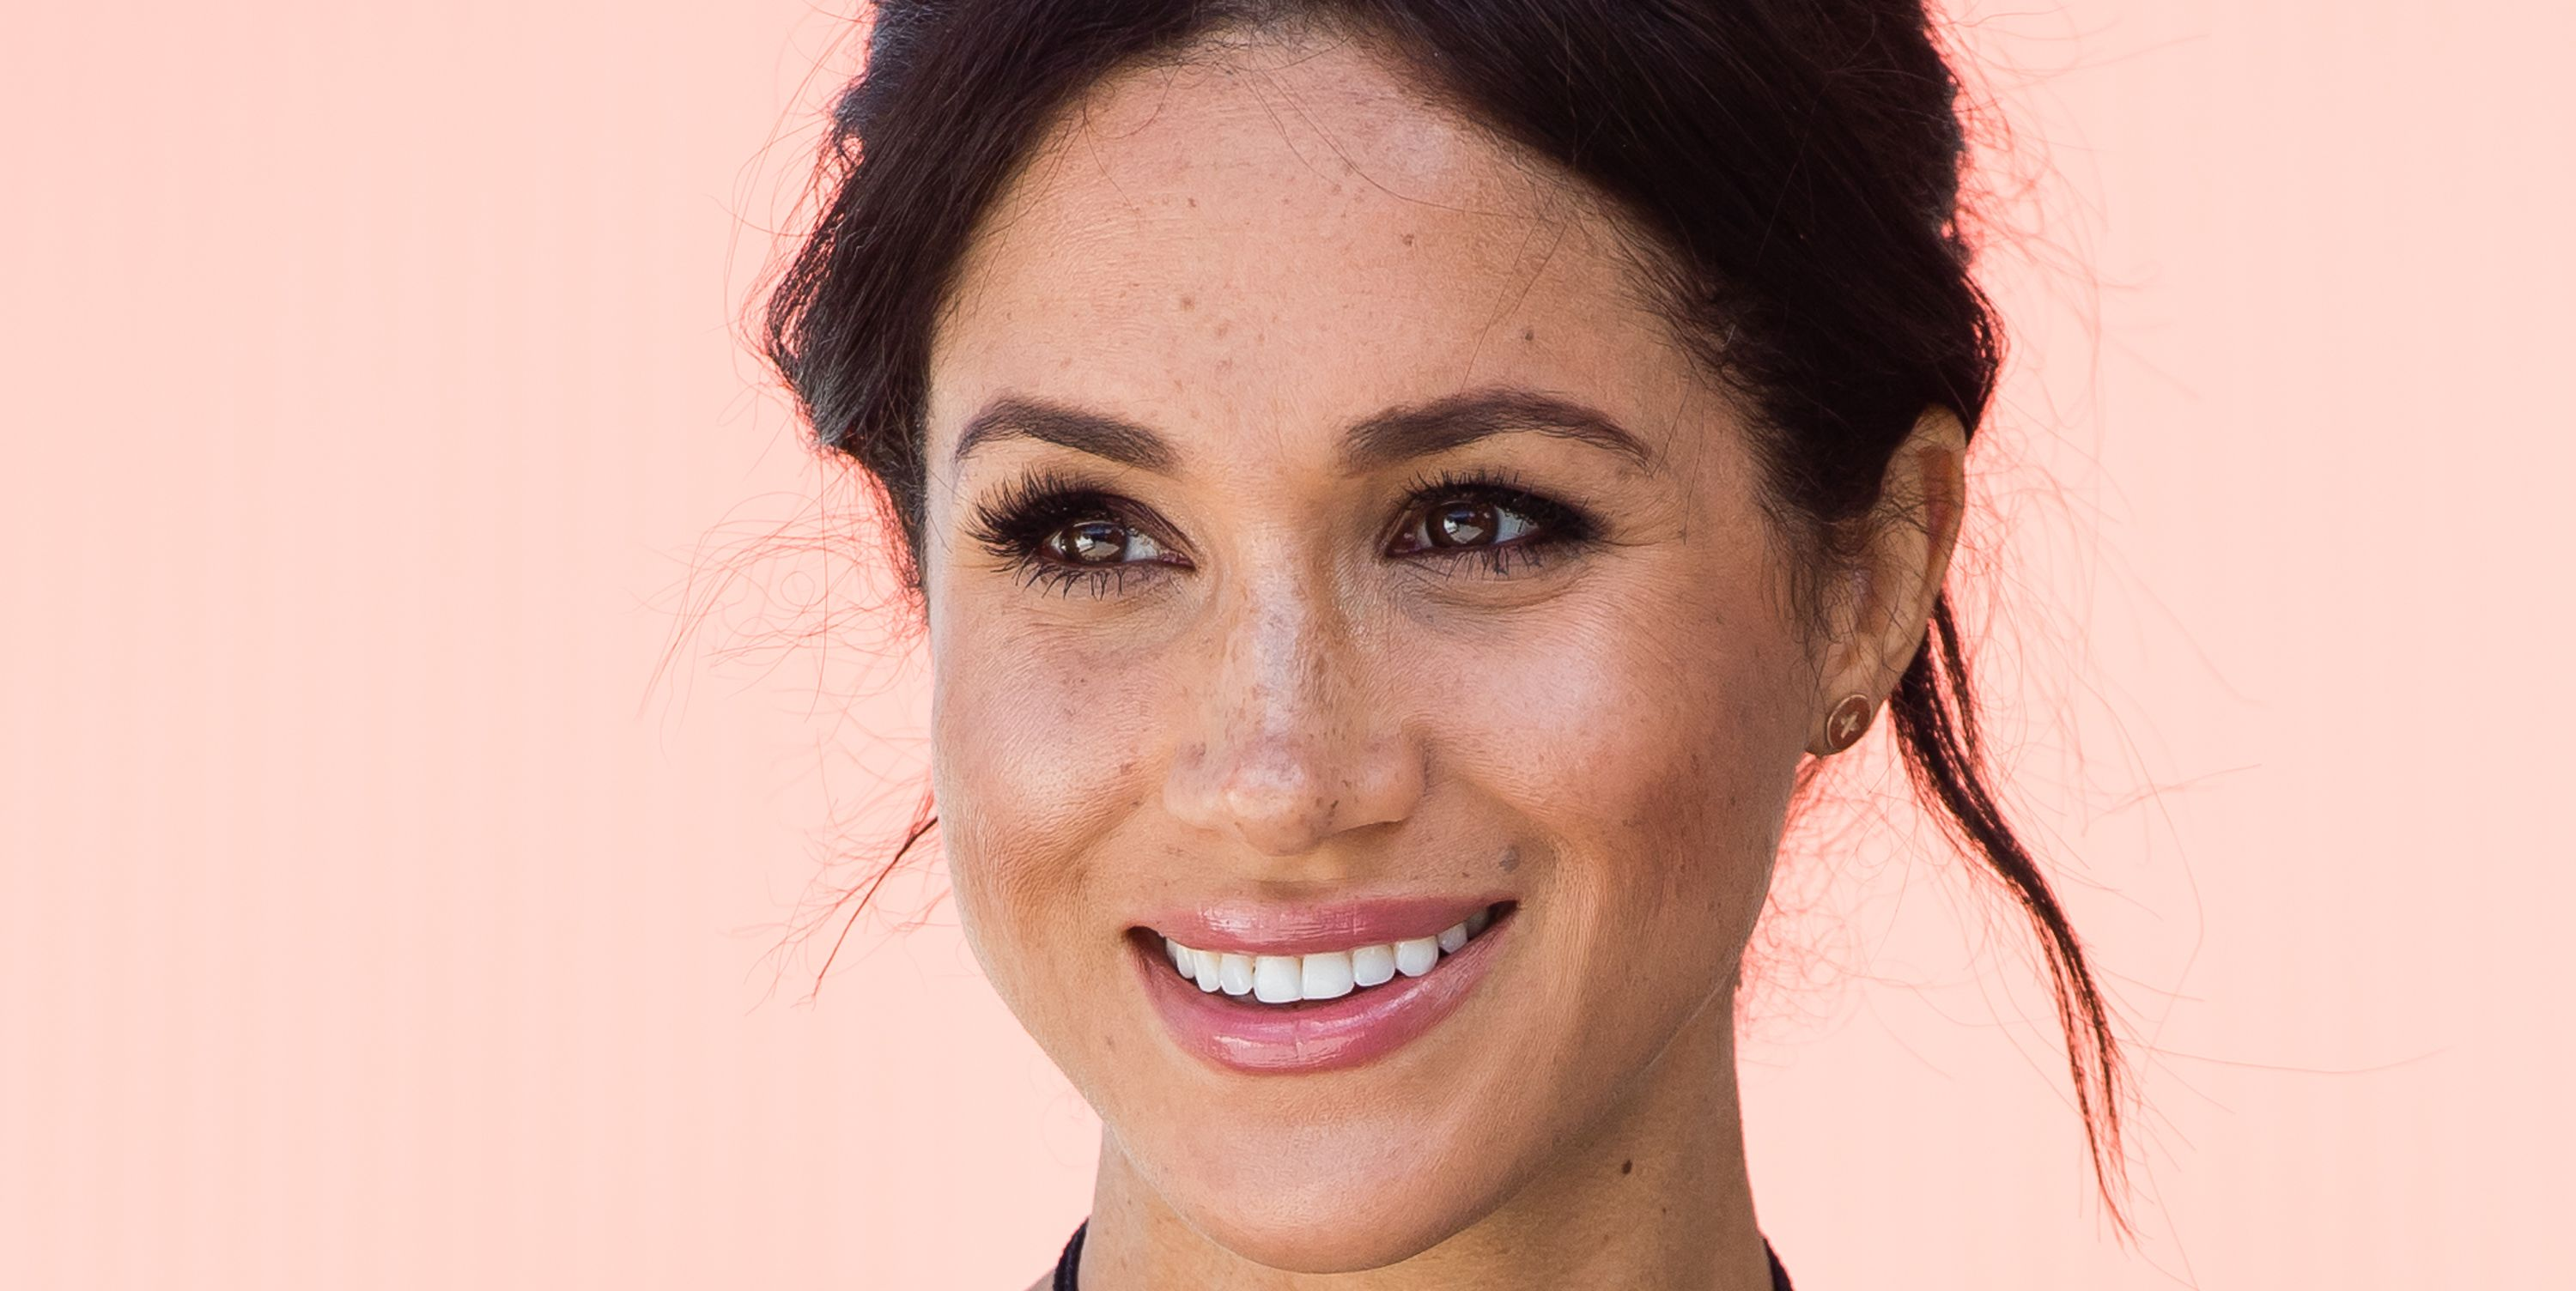 Did Meghan Markle Have Her Baby Yet? Here's What You Need to Know About Her Due Date